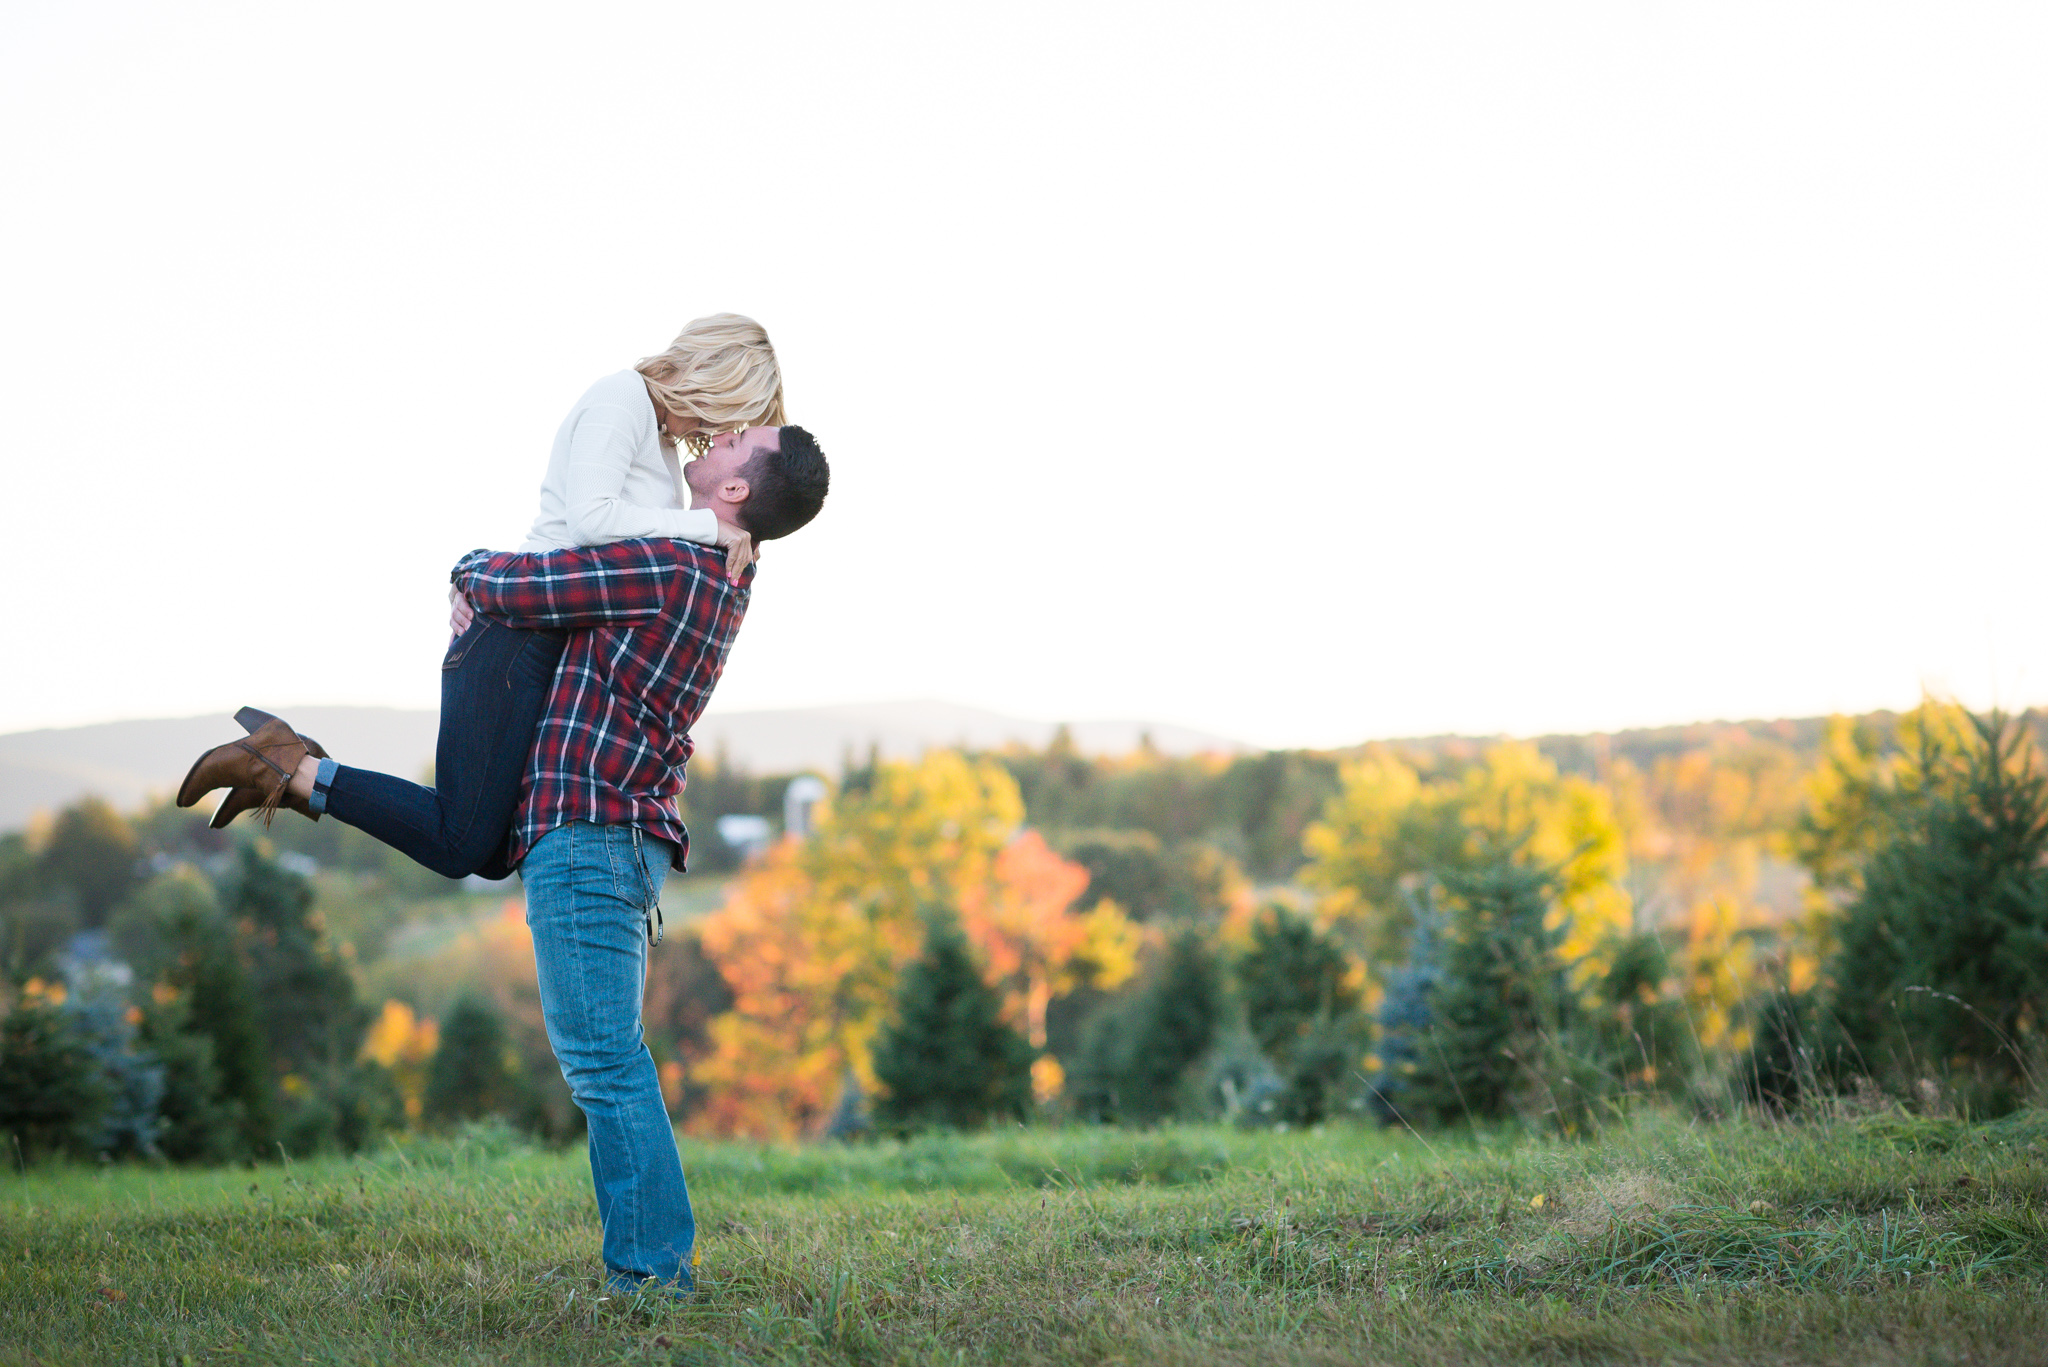 Mindy-Engagement-photography-wedding-photographer-northeast-PA-Scranton-Poconos-34.jpg